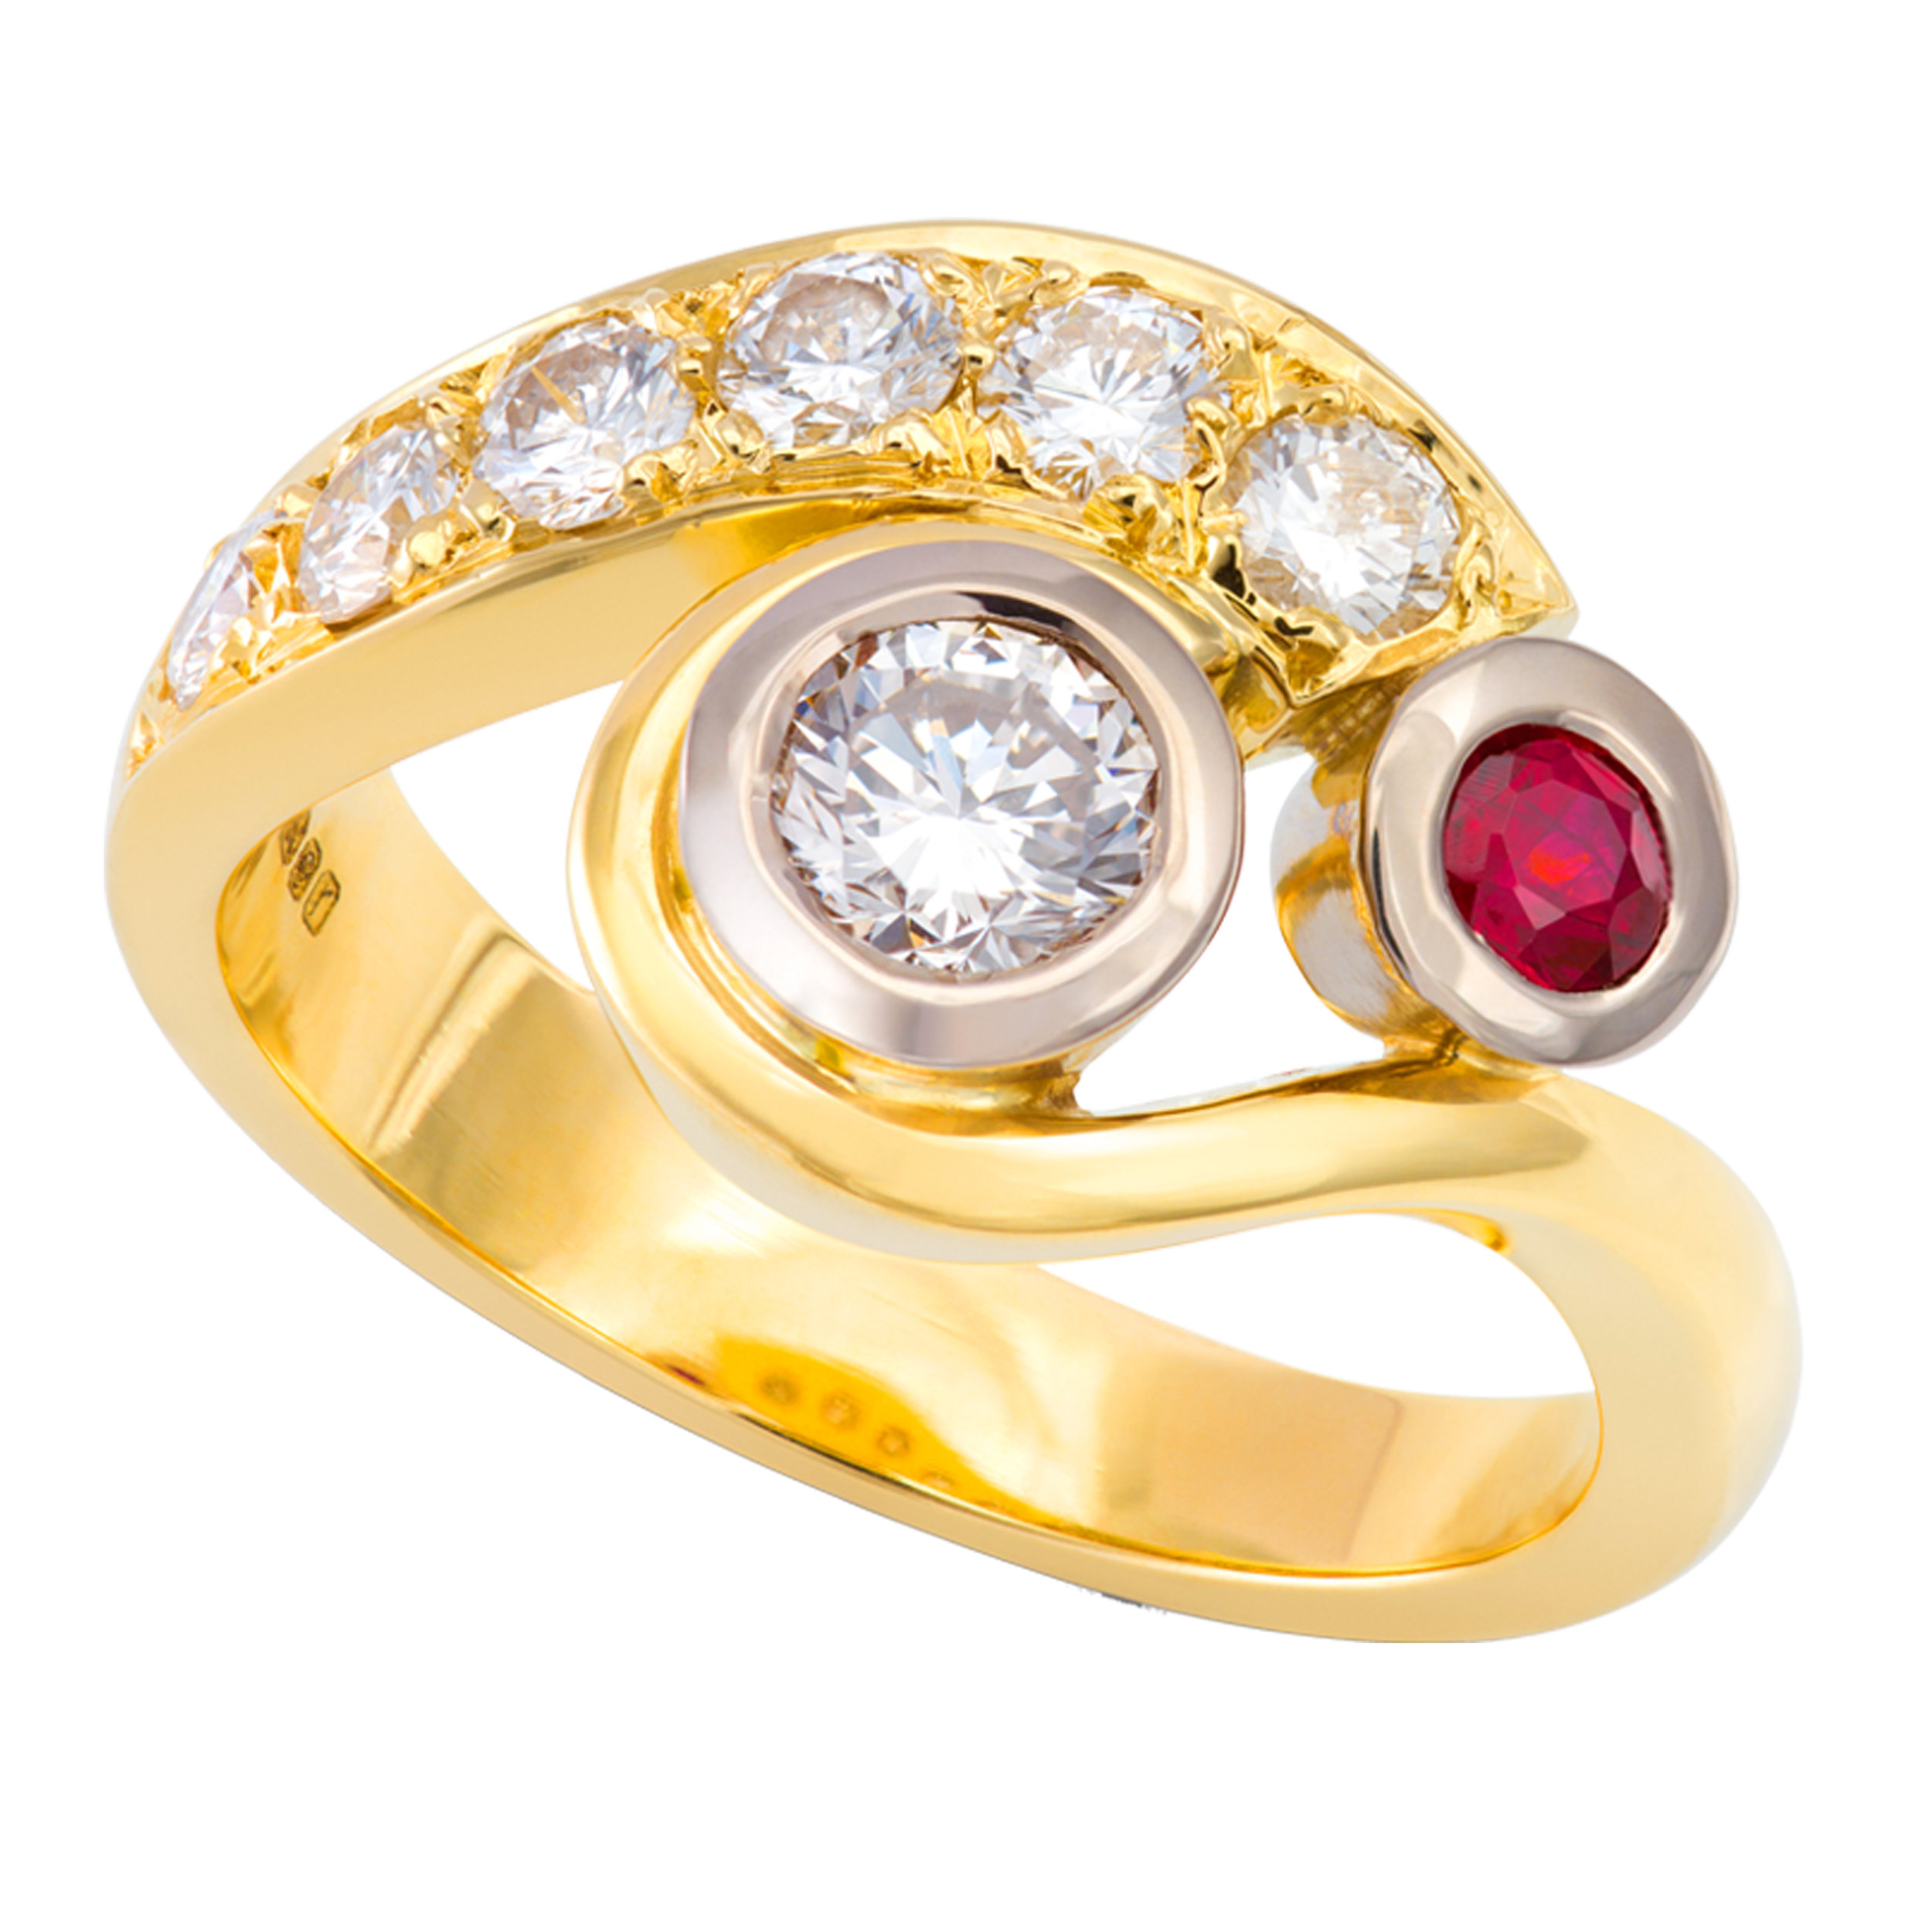 Bespoke 18ct yellow gold, ruby and diamond engagement and eternity ring commission